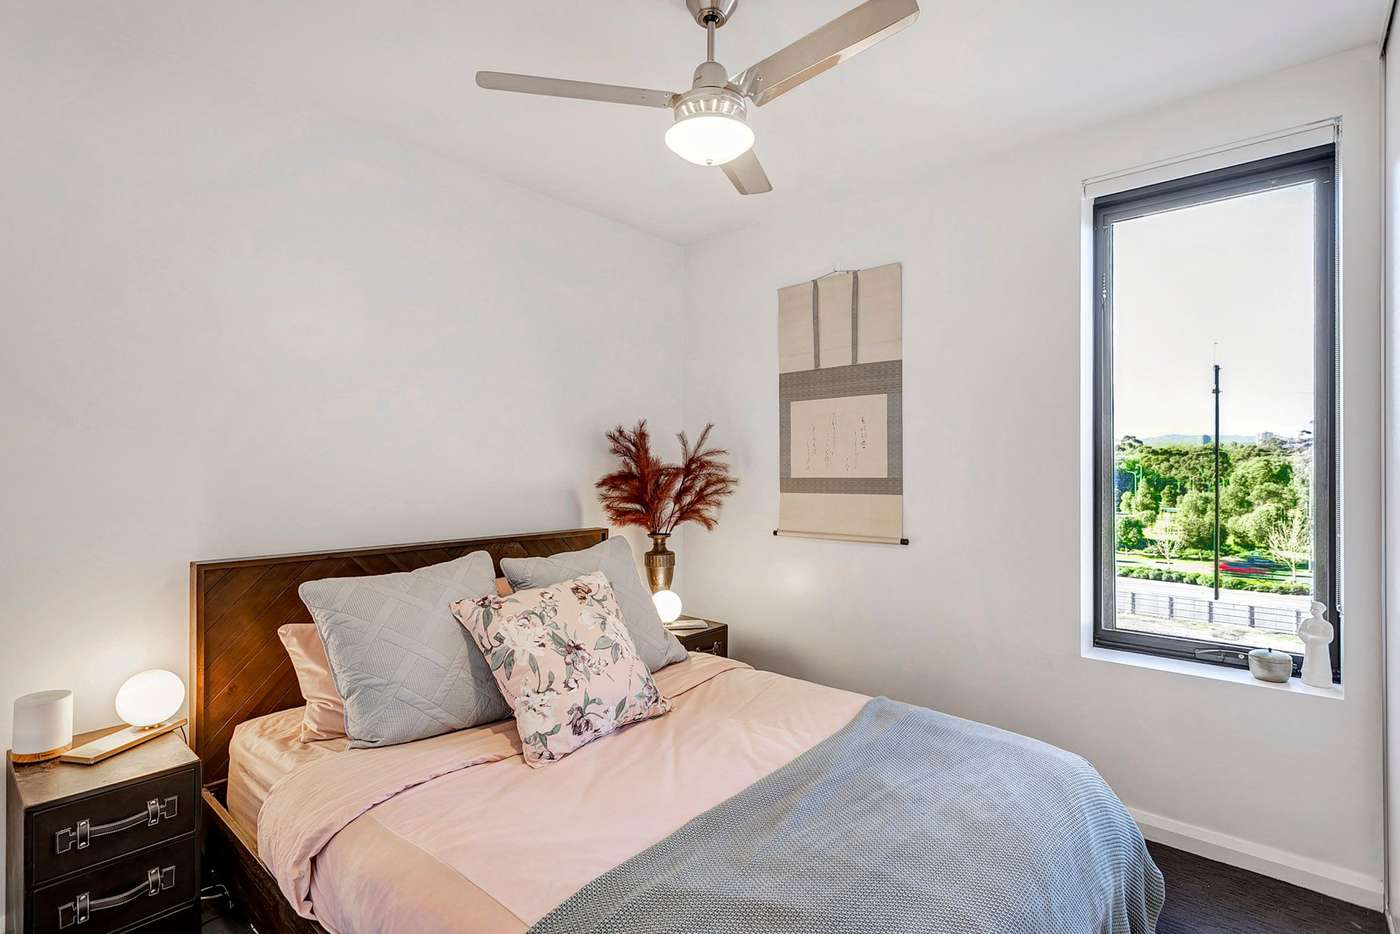 Sixth view of Homely apartment listing, 413/4 Fifth Street, Bowden SA 5007